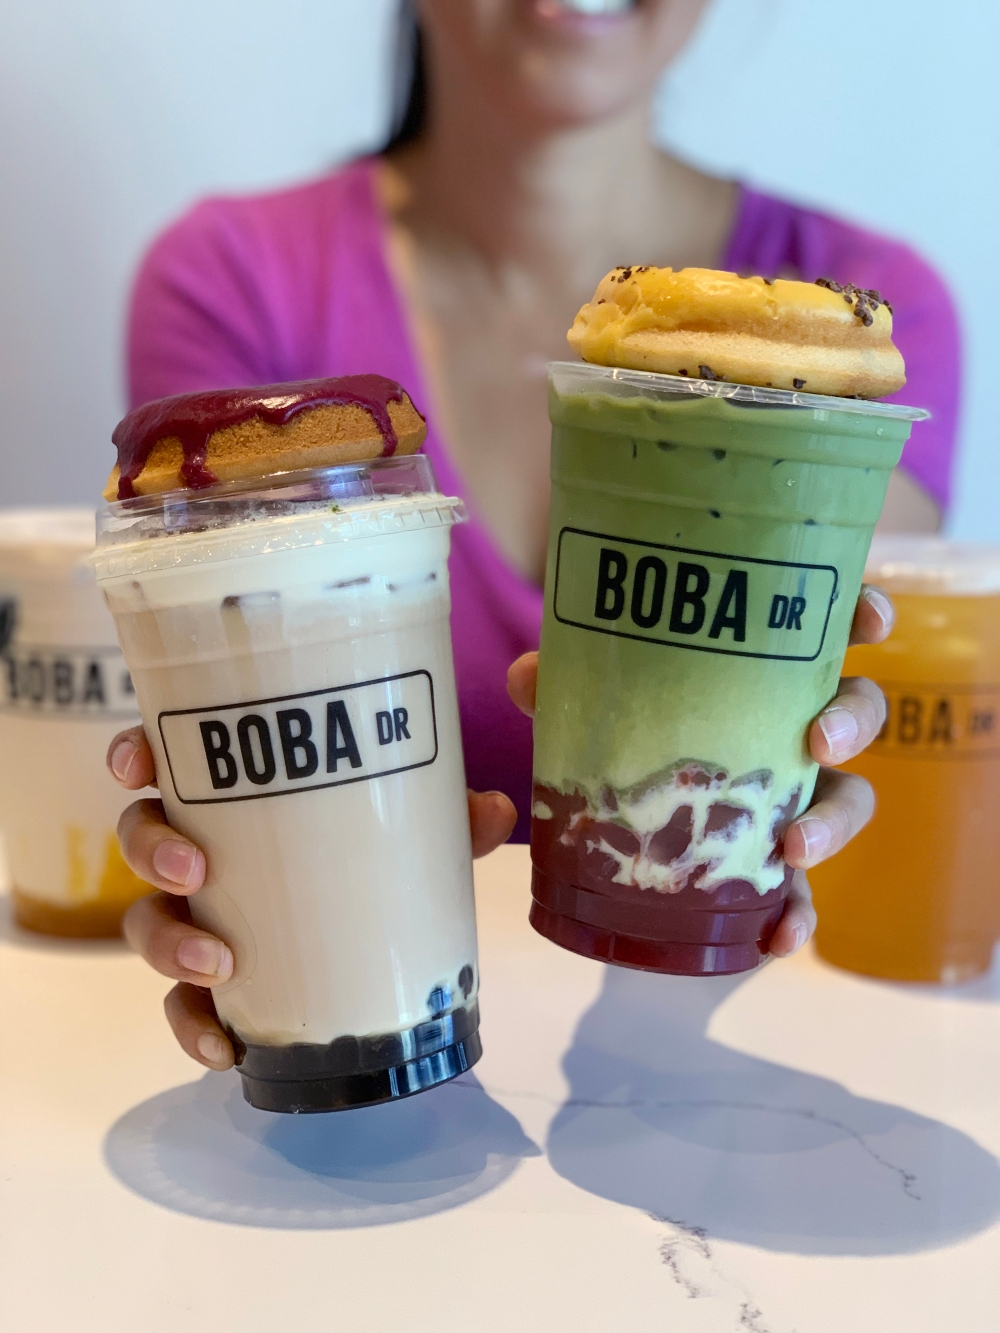 boba drive sunnyvale review third culture bakery